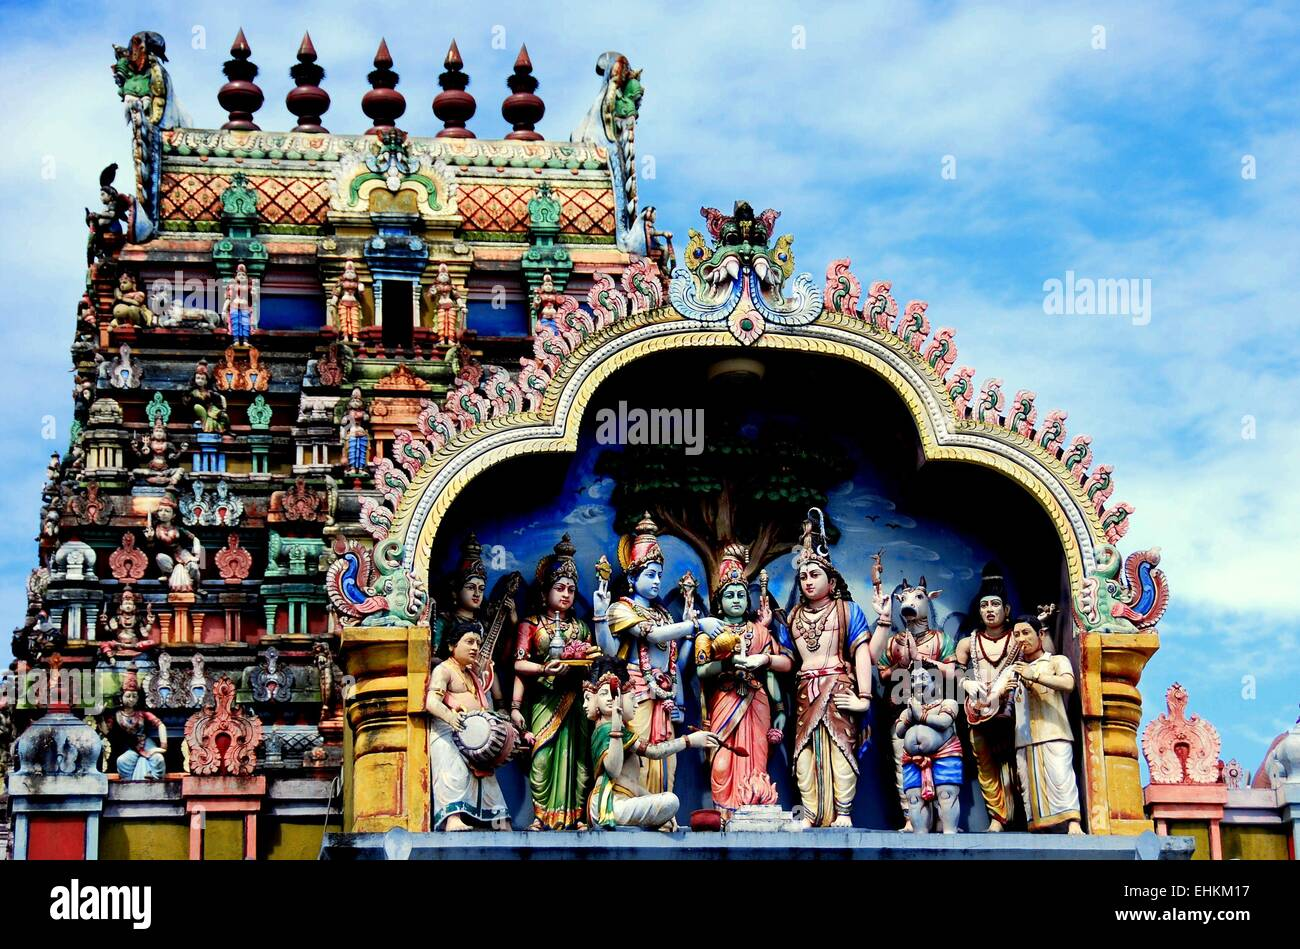 Georgetown, Malaysia:  Gopuram tower and Tableaux with Indian deities at the Penang Nagarathar Sivan Hindu Temple - Stock Image